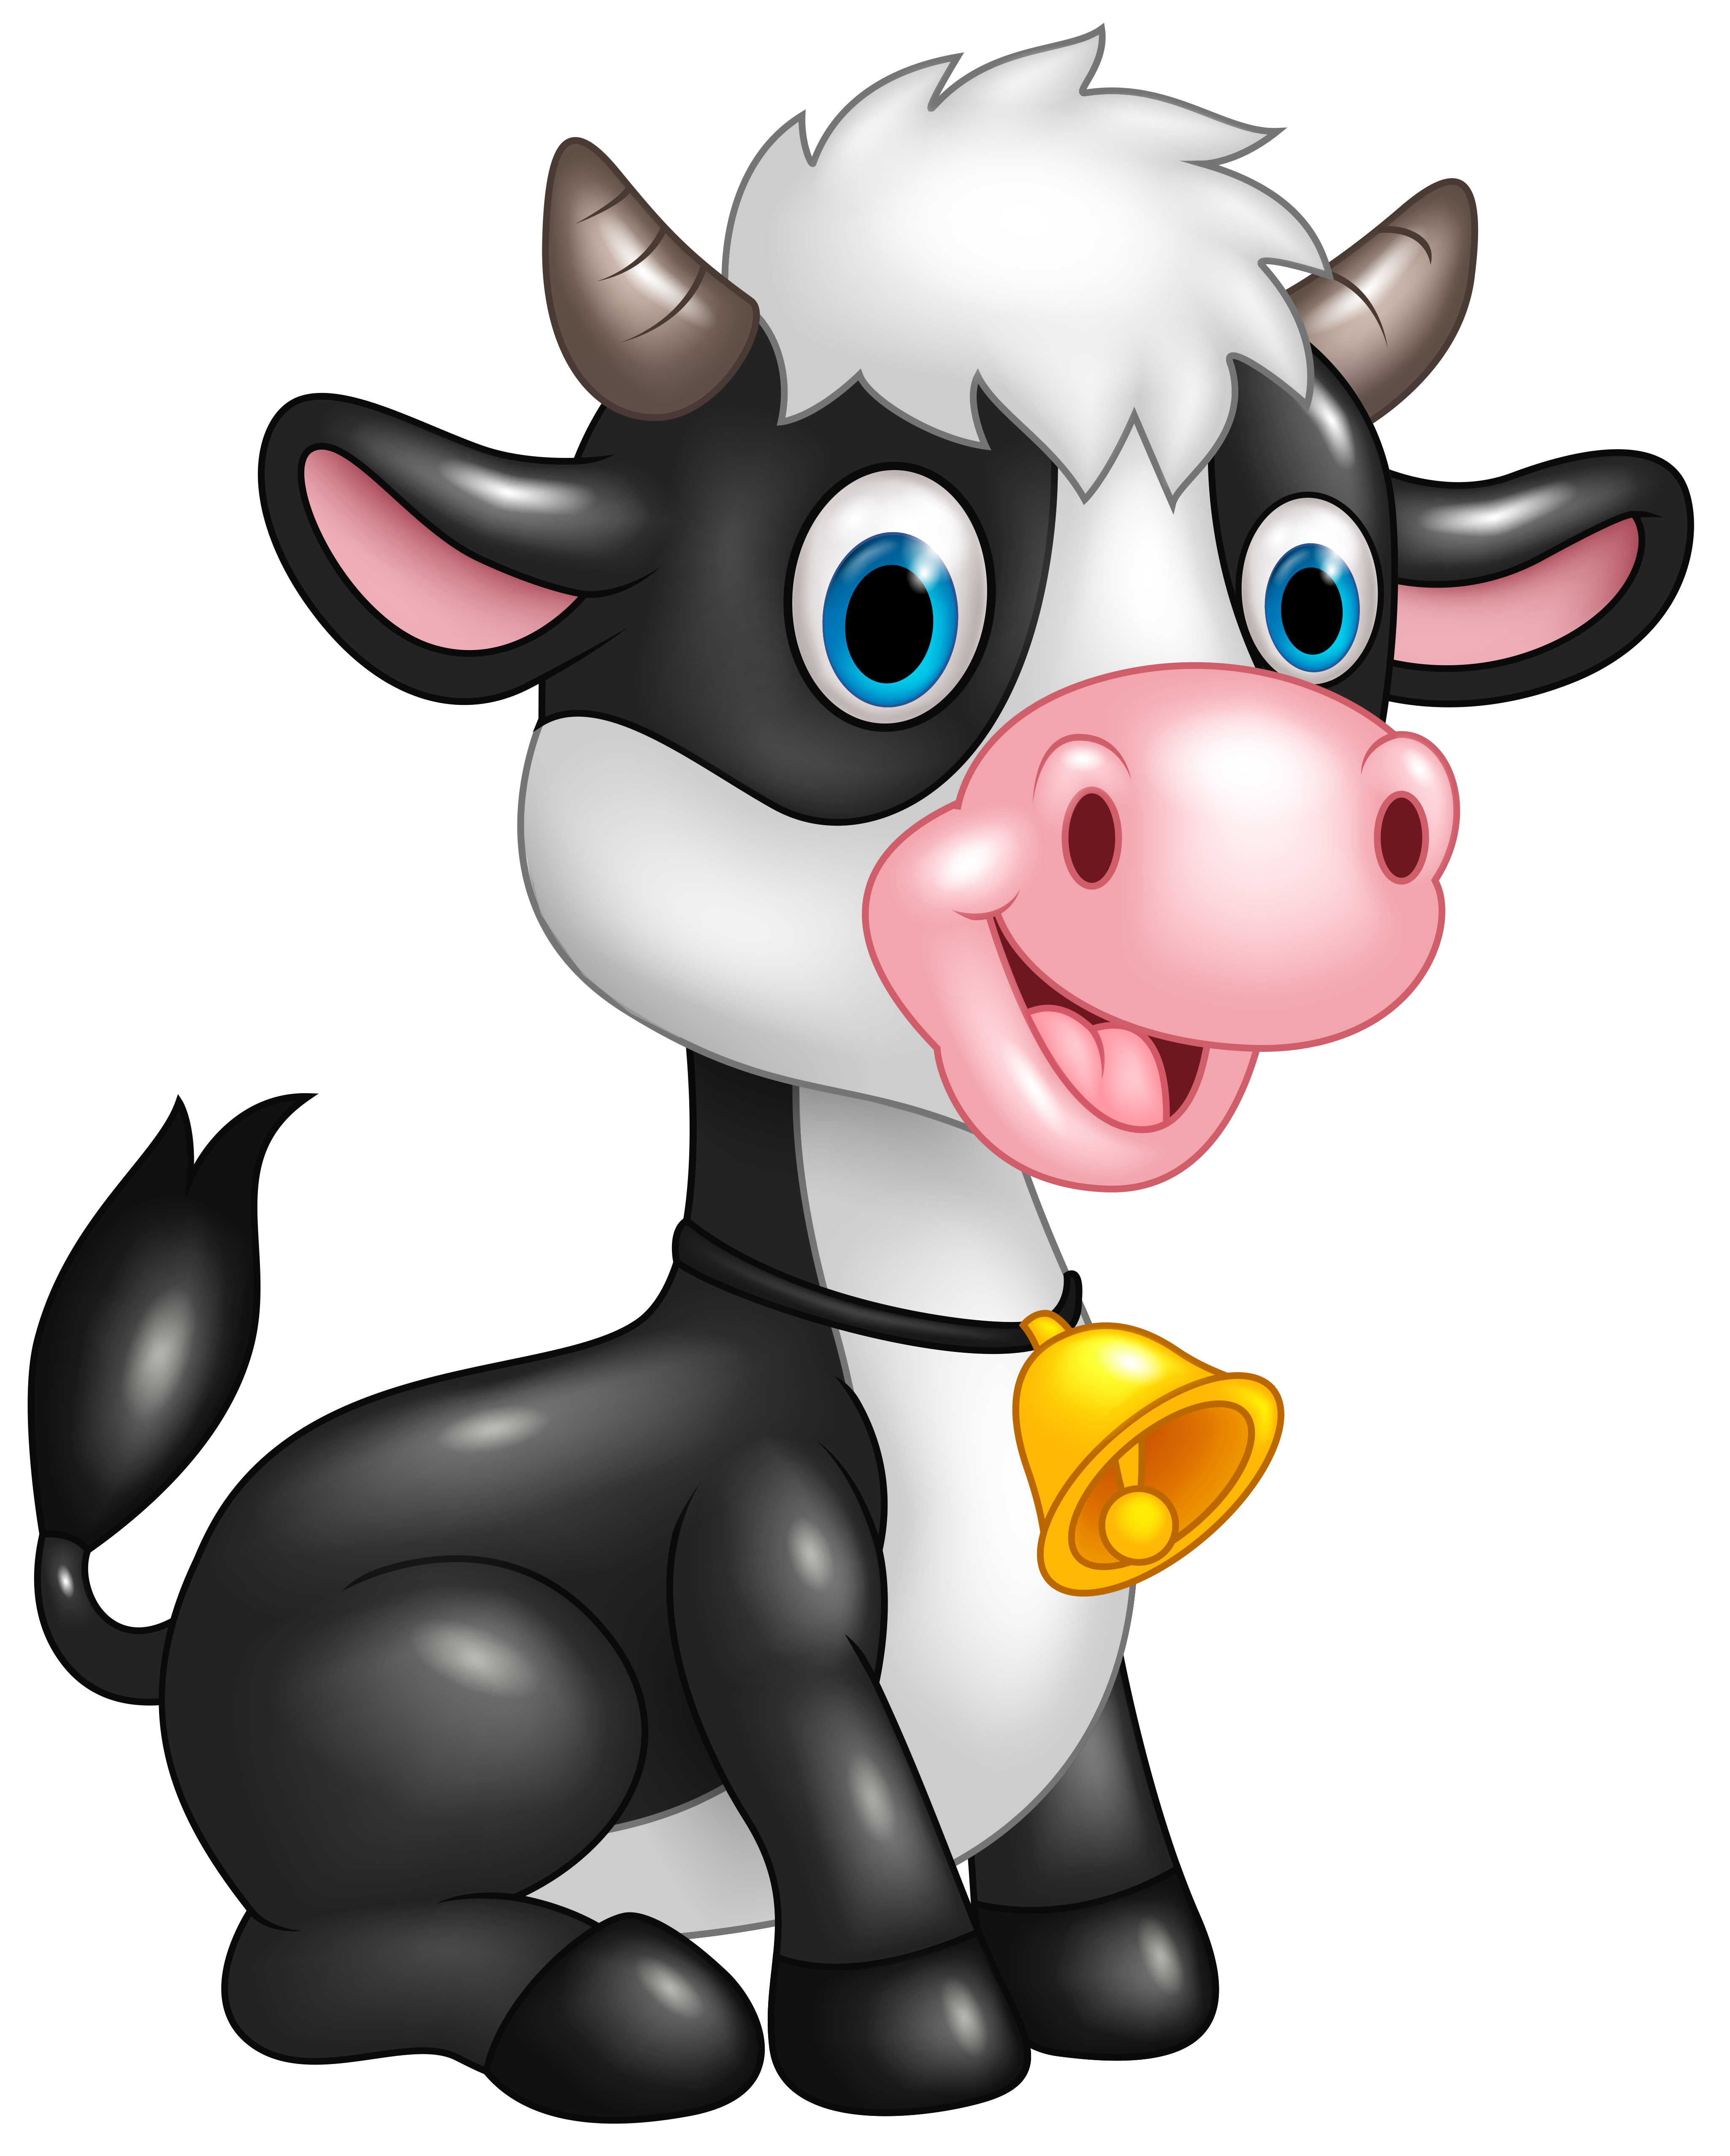 Cute Cow Png - Cute Cow Cartoon PNG Clipart Image | Gallery Yopriceville - High ...